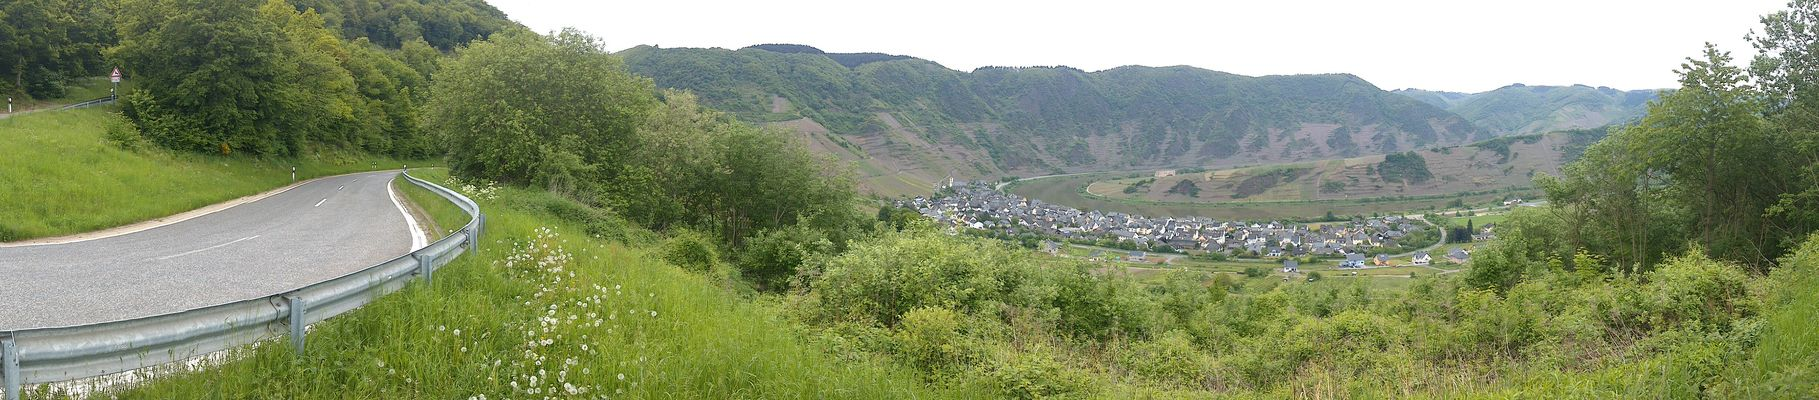 Panorama at Calmont an der Mosel by Sylvia Bauer